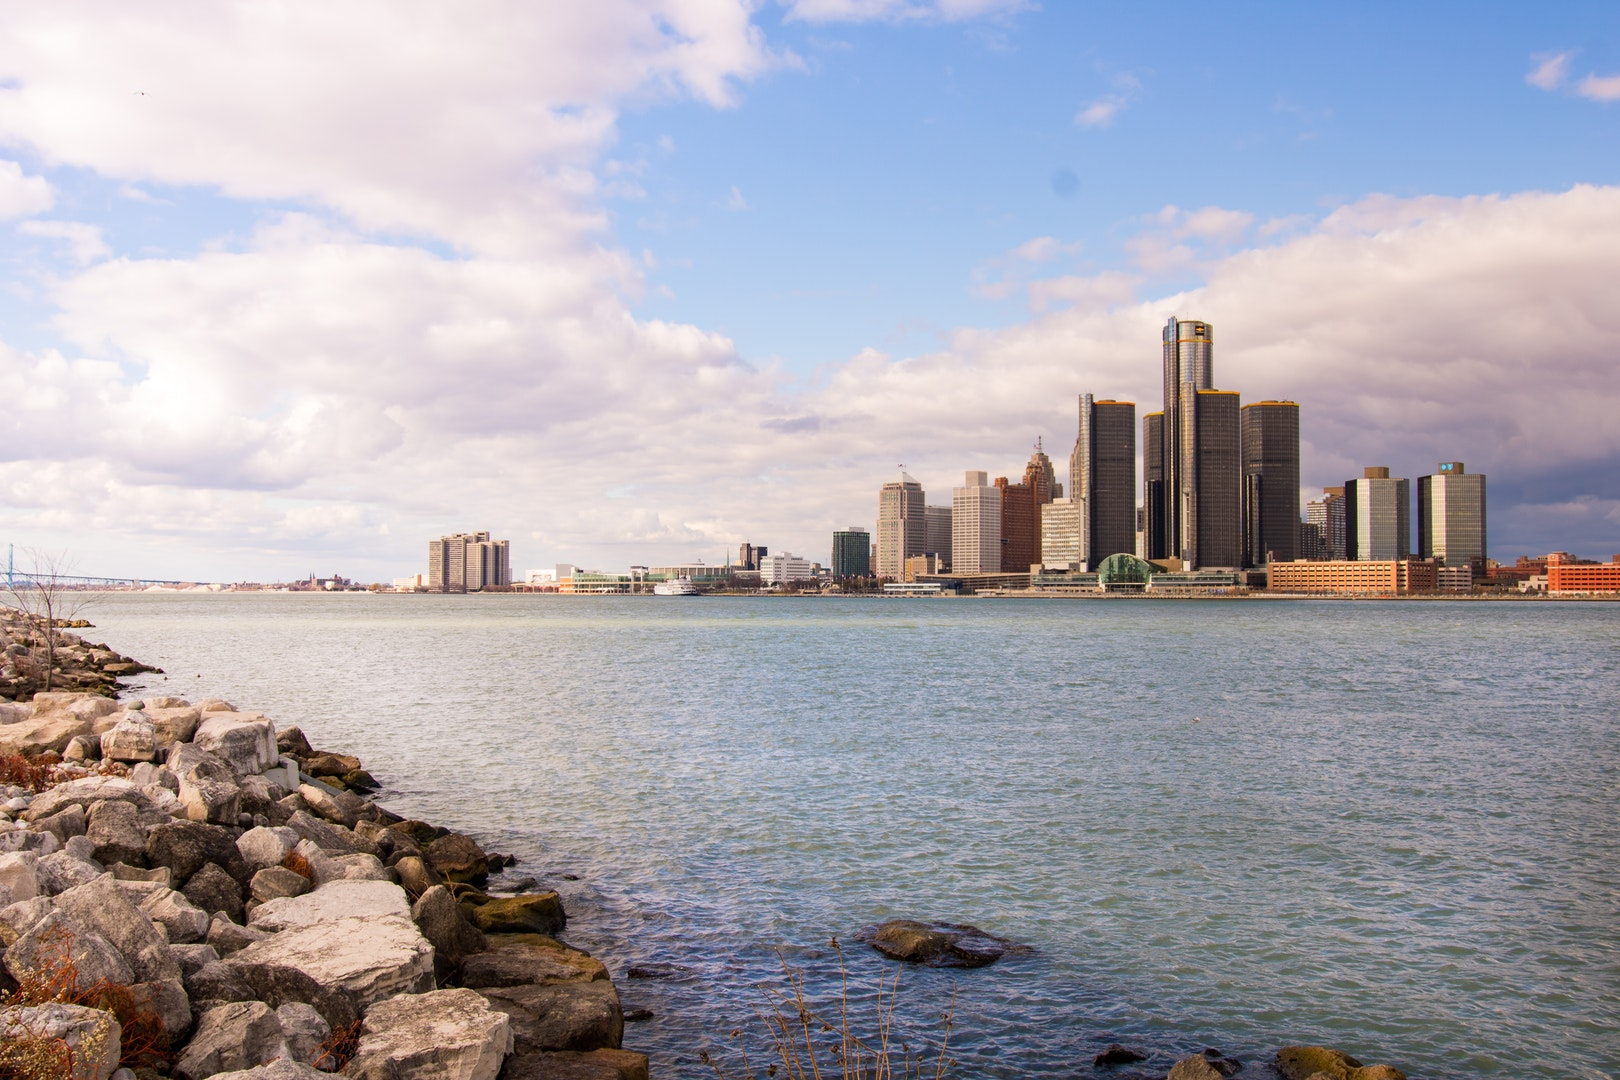 A $500 House in Detroit by Drew Philip; Detroit, Michigan skyline